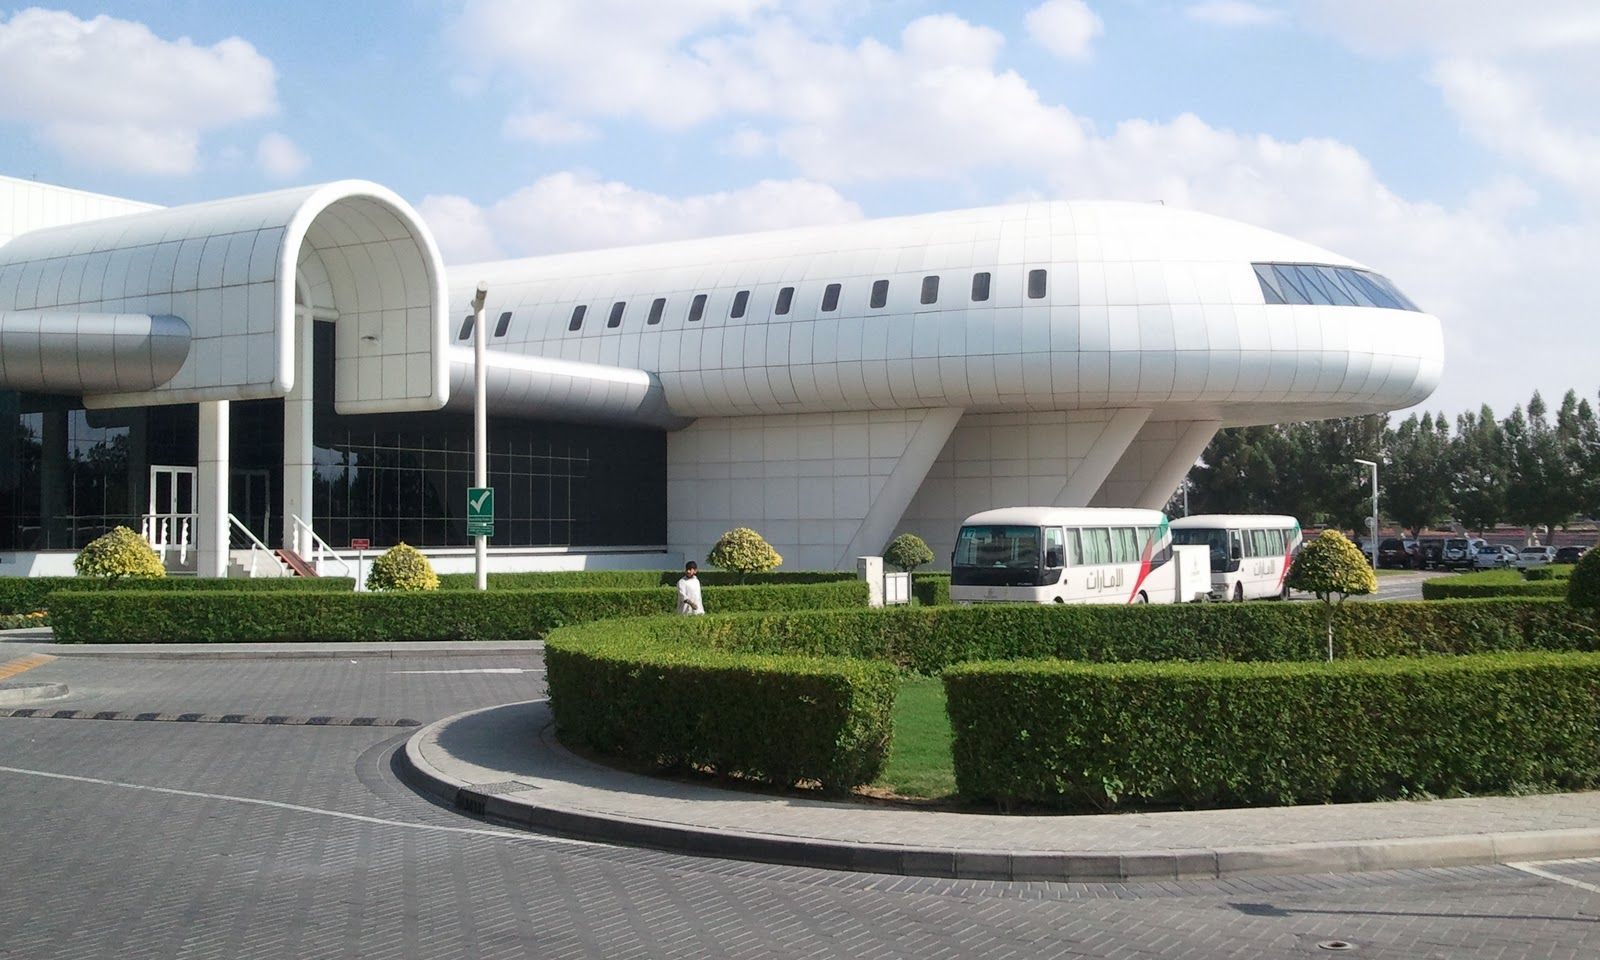 Emirates aviation training building | Aviation university, Emirates airline,  Visit dubai